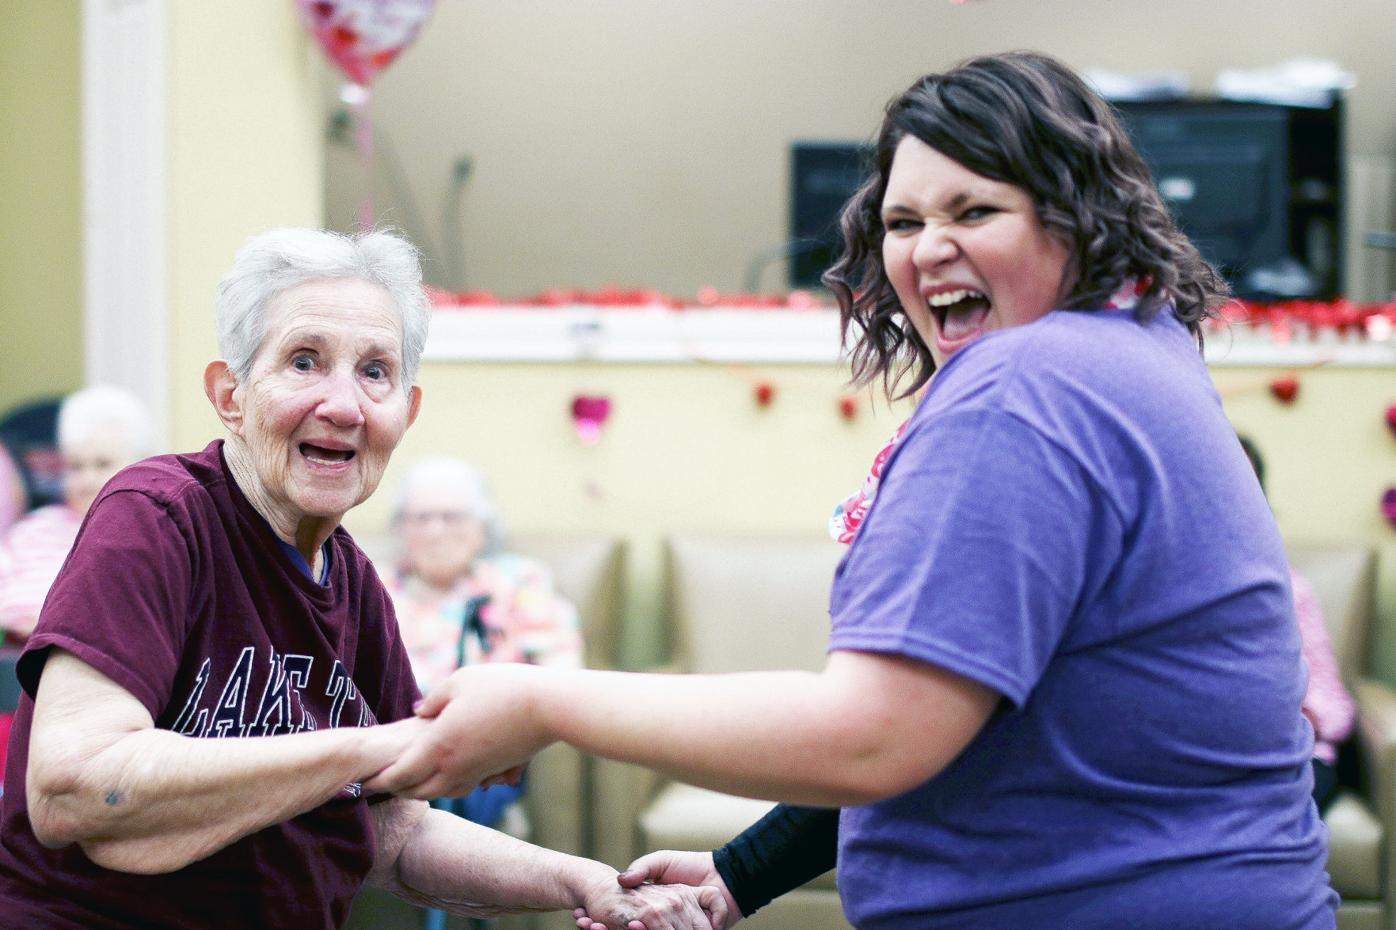 Humphrey recalled for her love of community